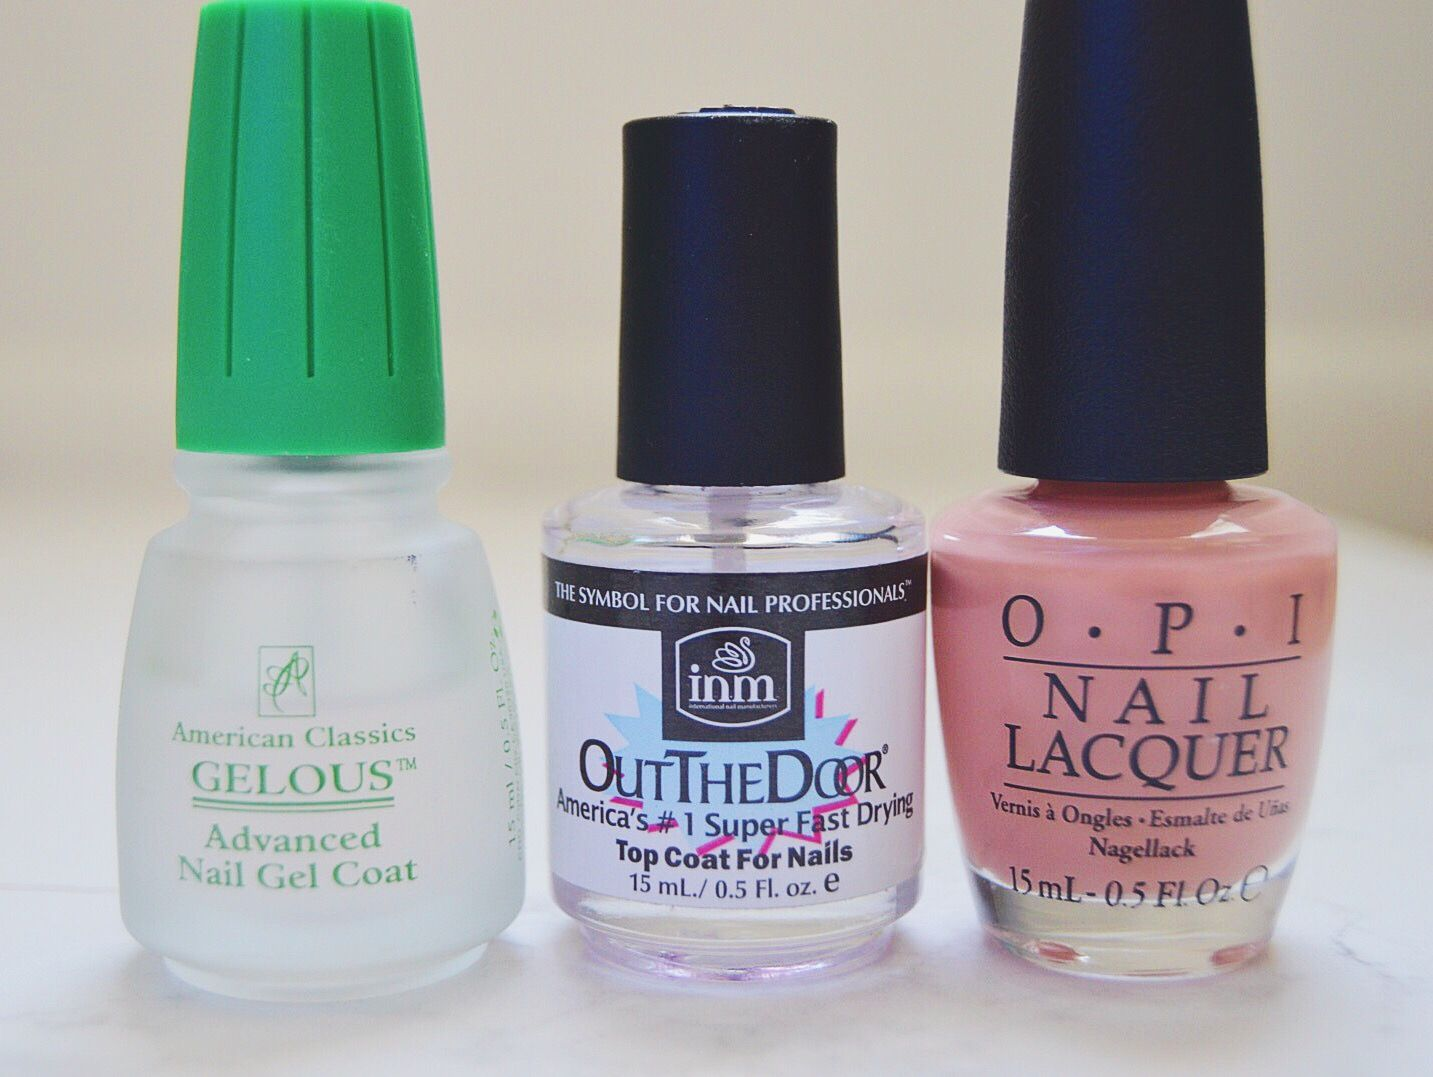 Diy gel manicure hack joispeaks joi speaks pinterest diy gel manicure hack joispeaks malvernweather Image collections